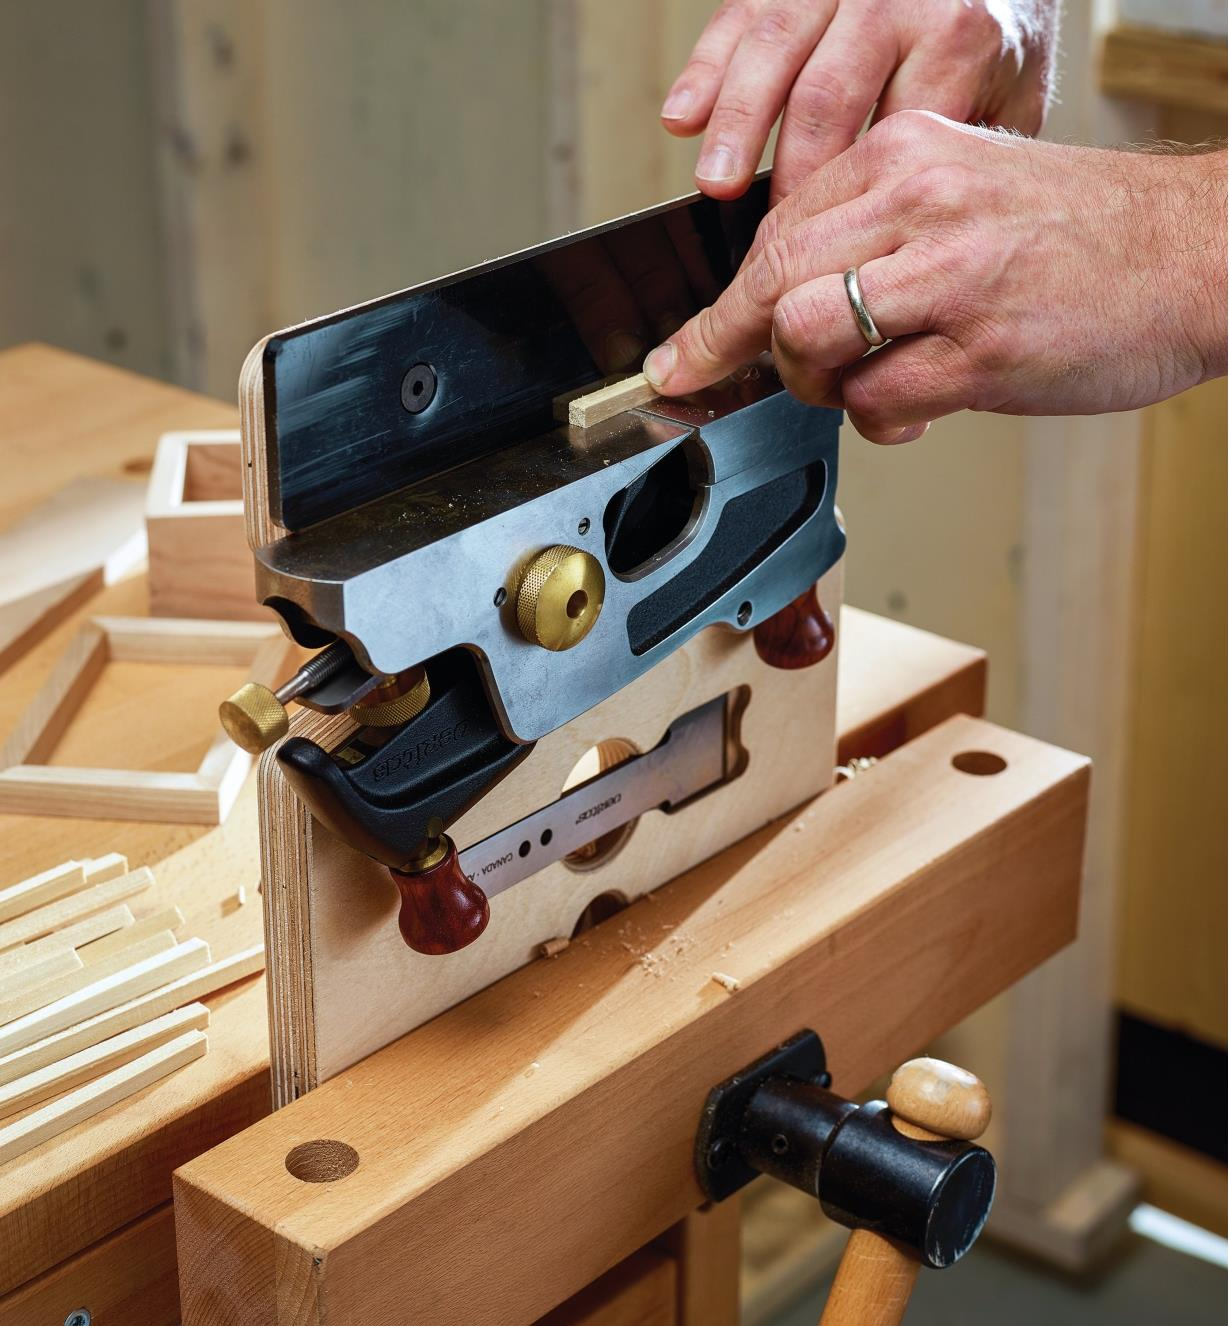 Planing a small part using a large shoulder plane in an upright hand jointer